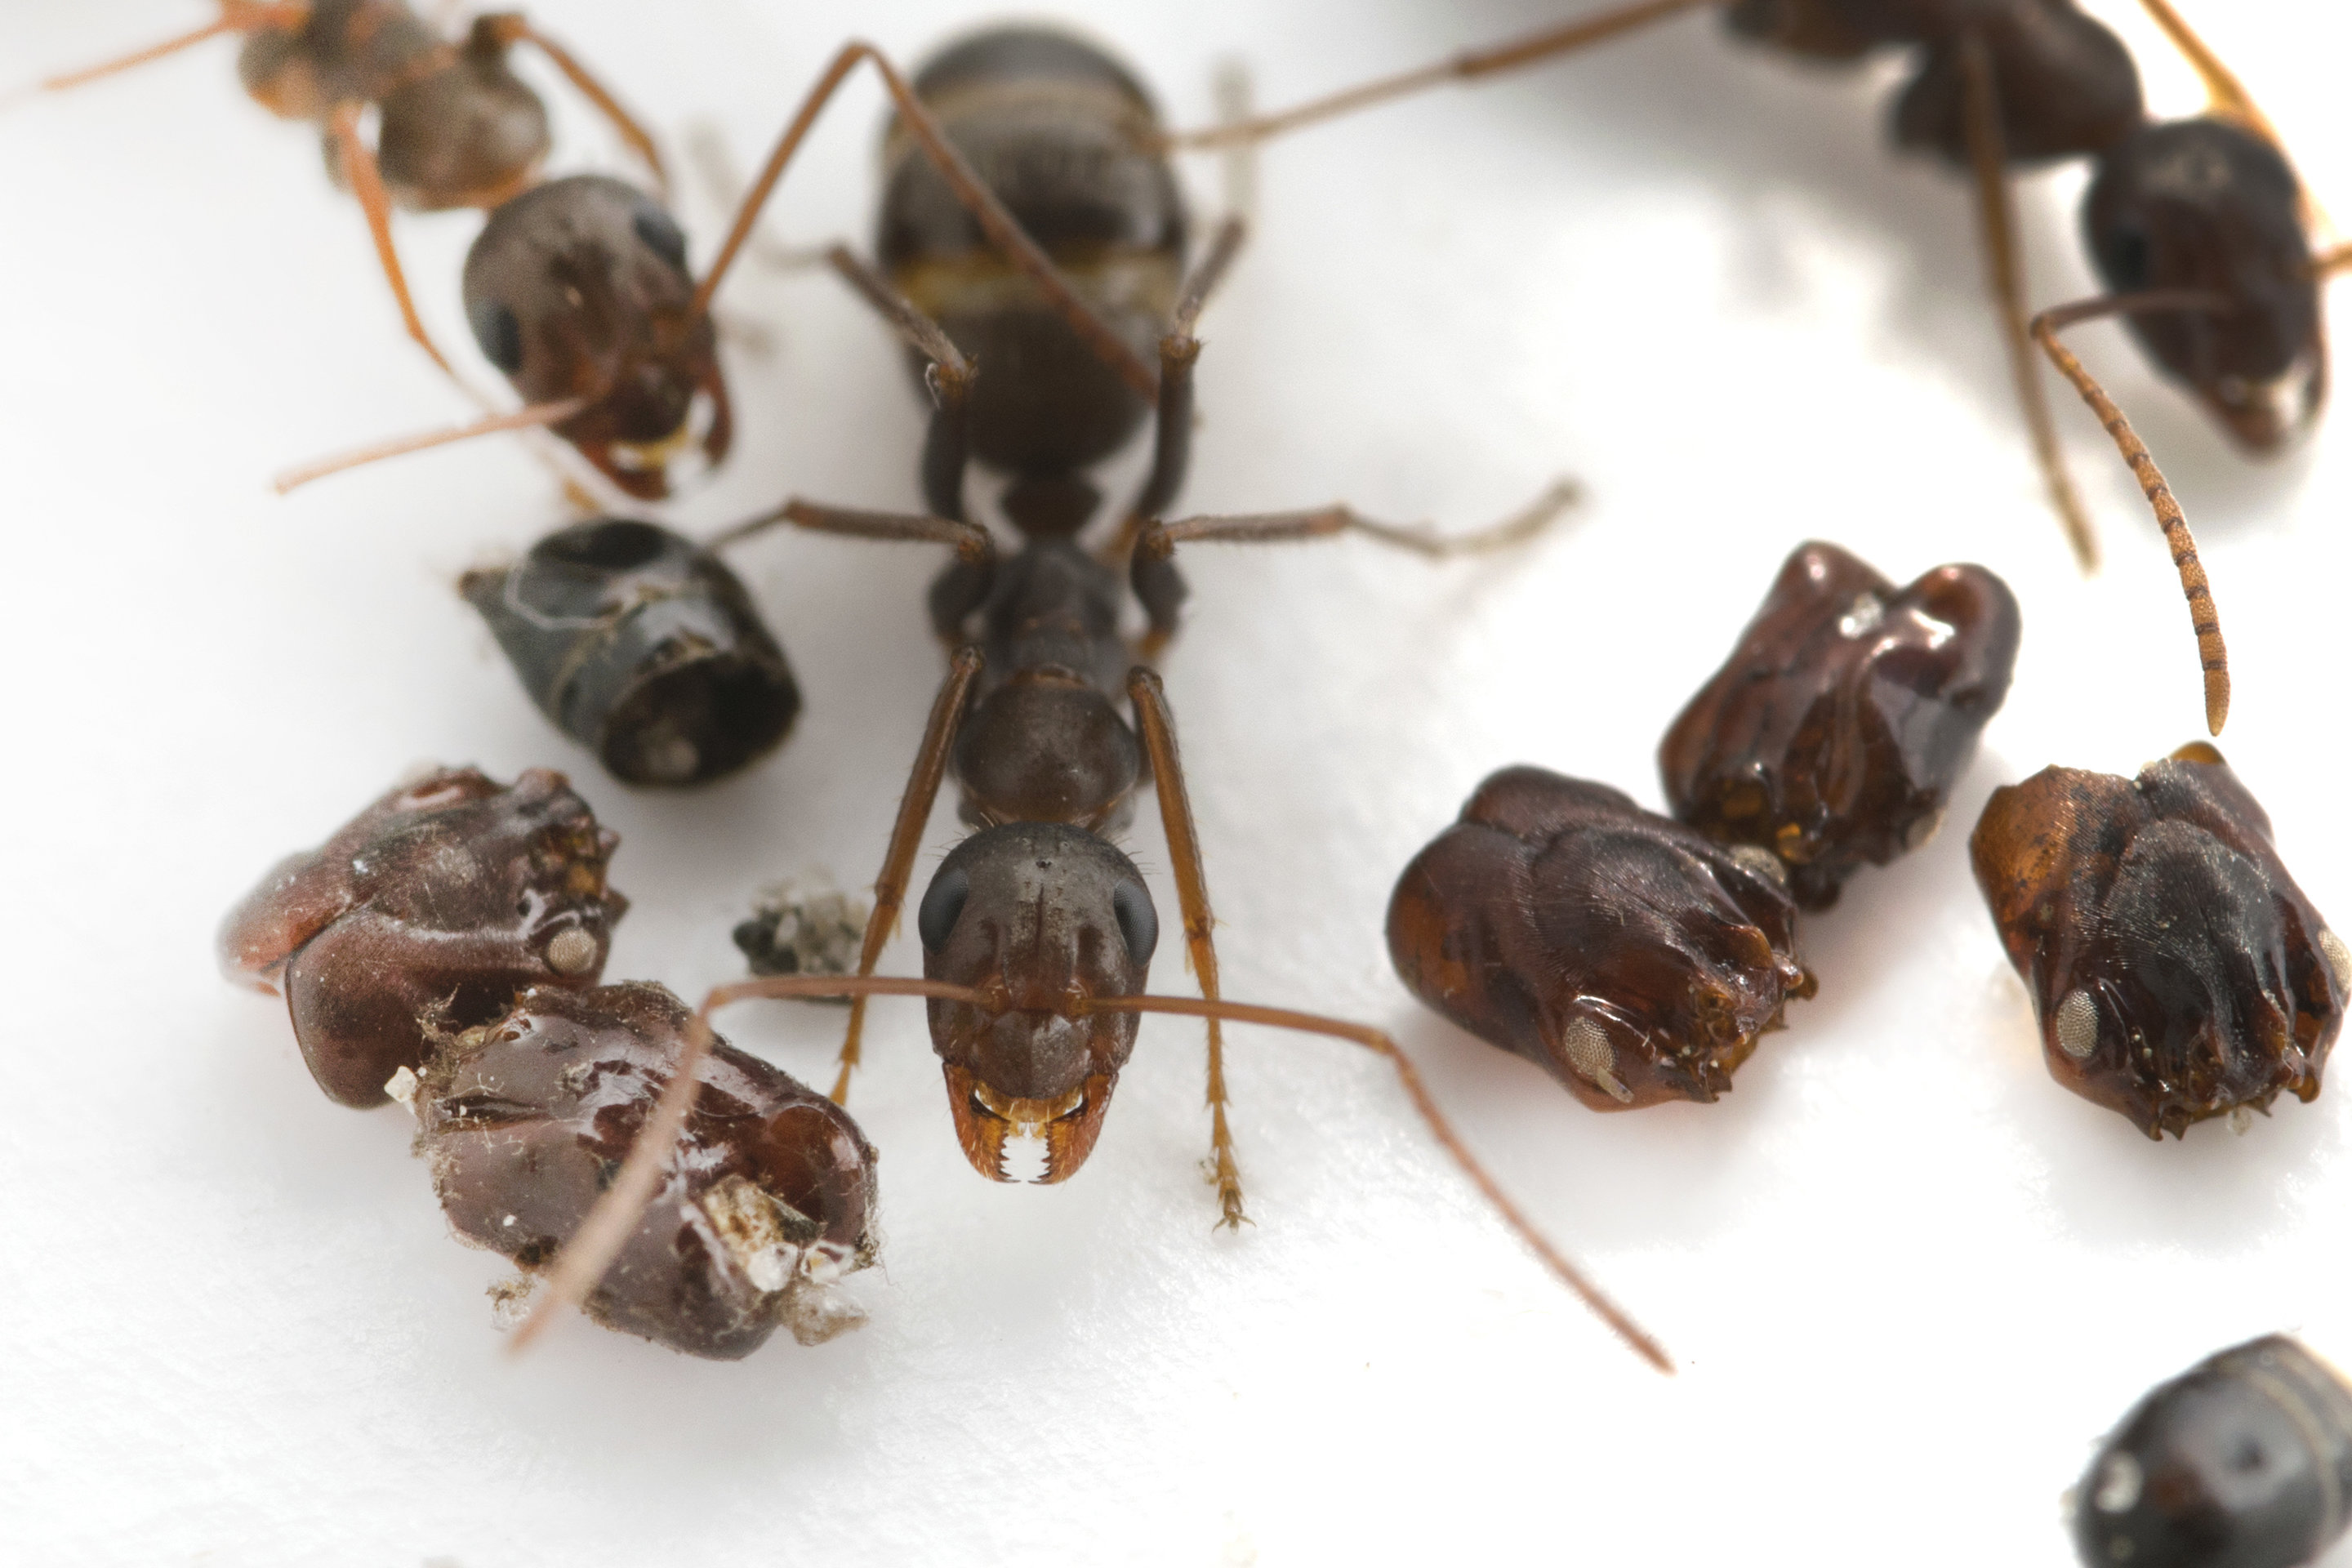 New research uncovers the predatory behavior of Florida's skull-collecting ant